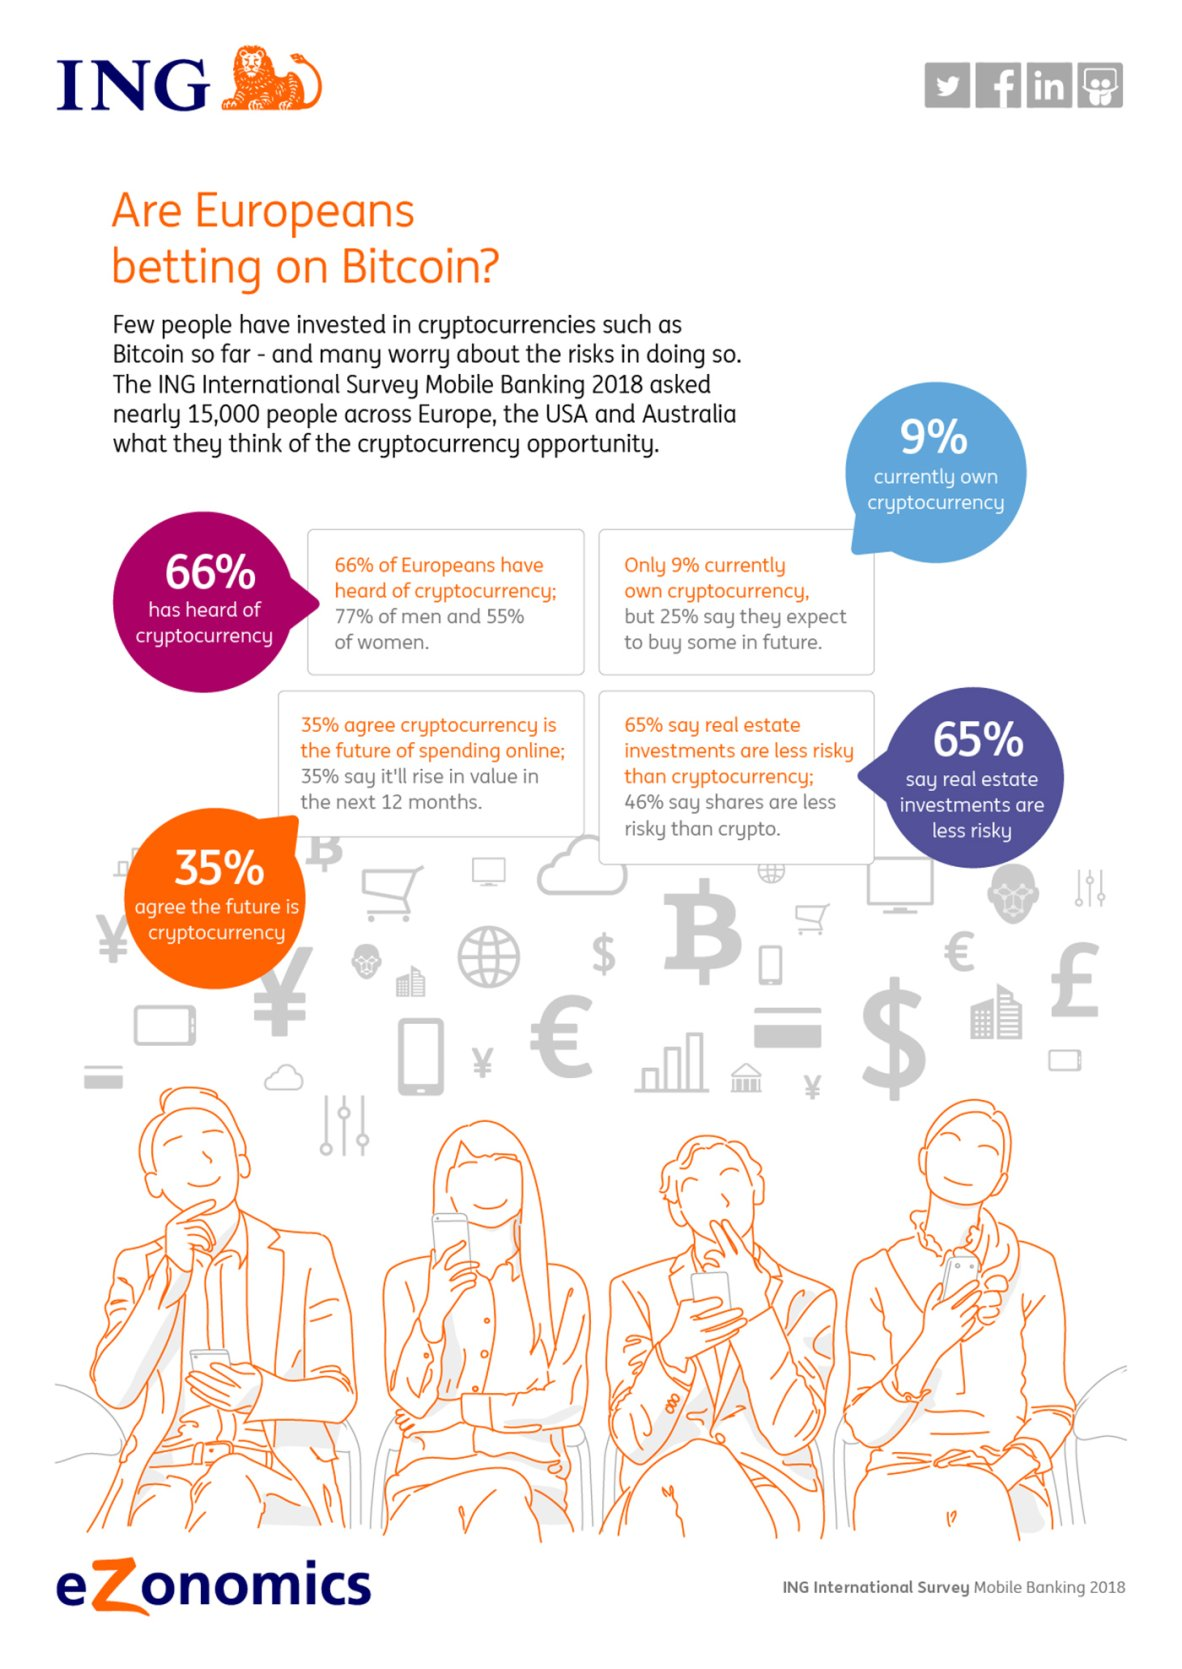 Few European consumers interested in bitcoin - ING